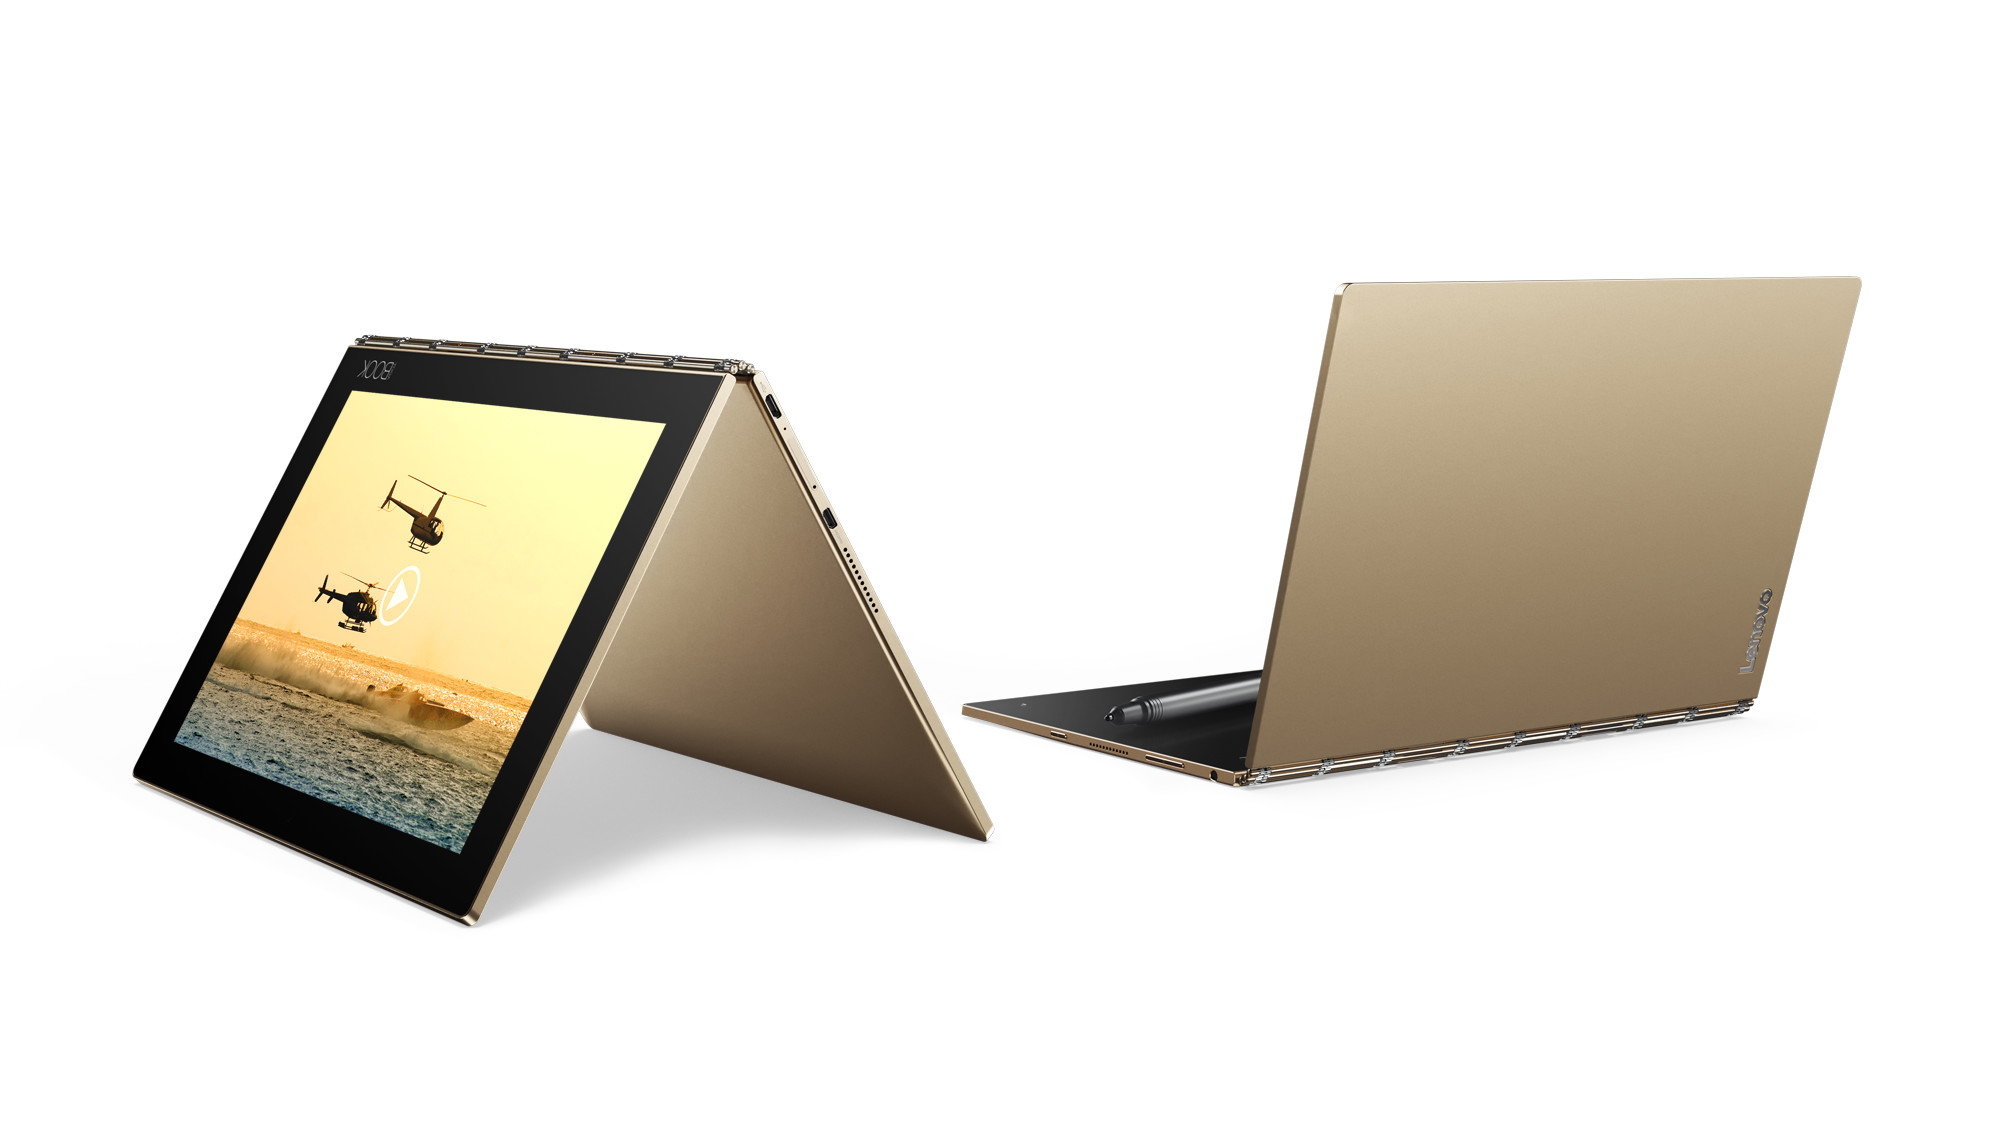 "Lenovo YOGA BOOK AND LTE Atom x5-Z8550 2,4GHz/4GB/64GB/10,1"" FHD/IPS/multitouch/CreatePad/Halo KBRD/Android 6 zlatá"